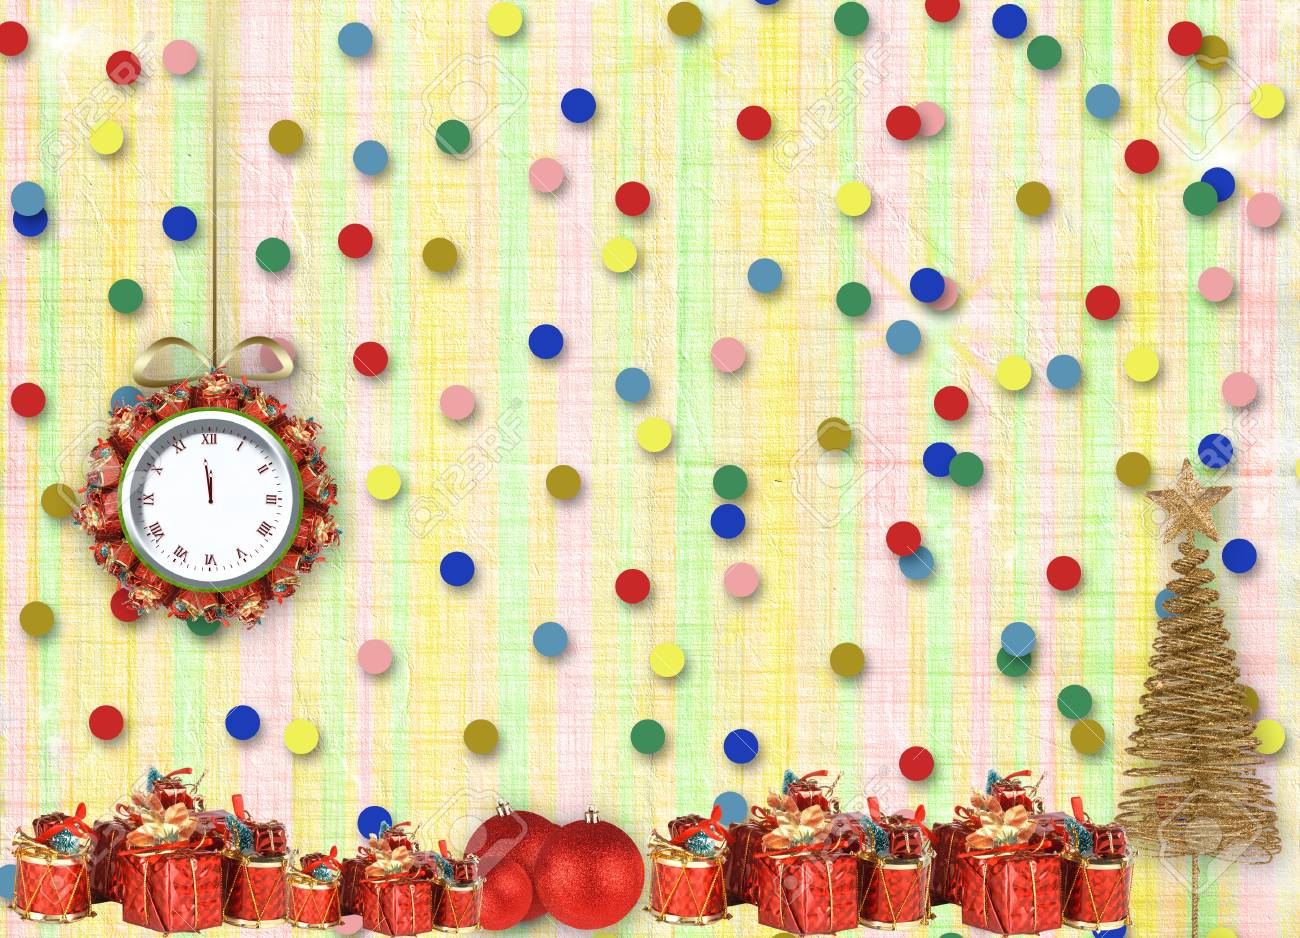 Christmas gifts to the clock on the abstract background with confetti and stars Stock Photo - 16569147